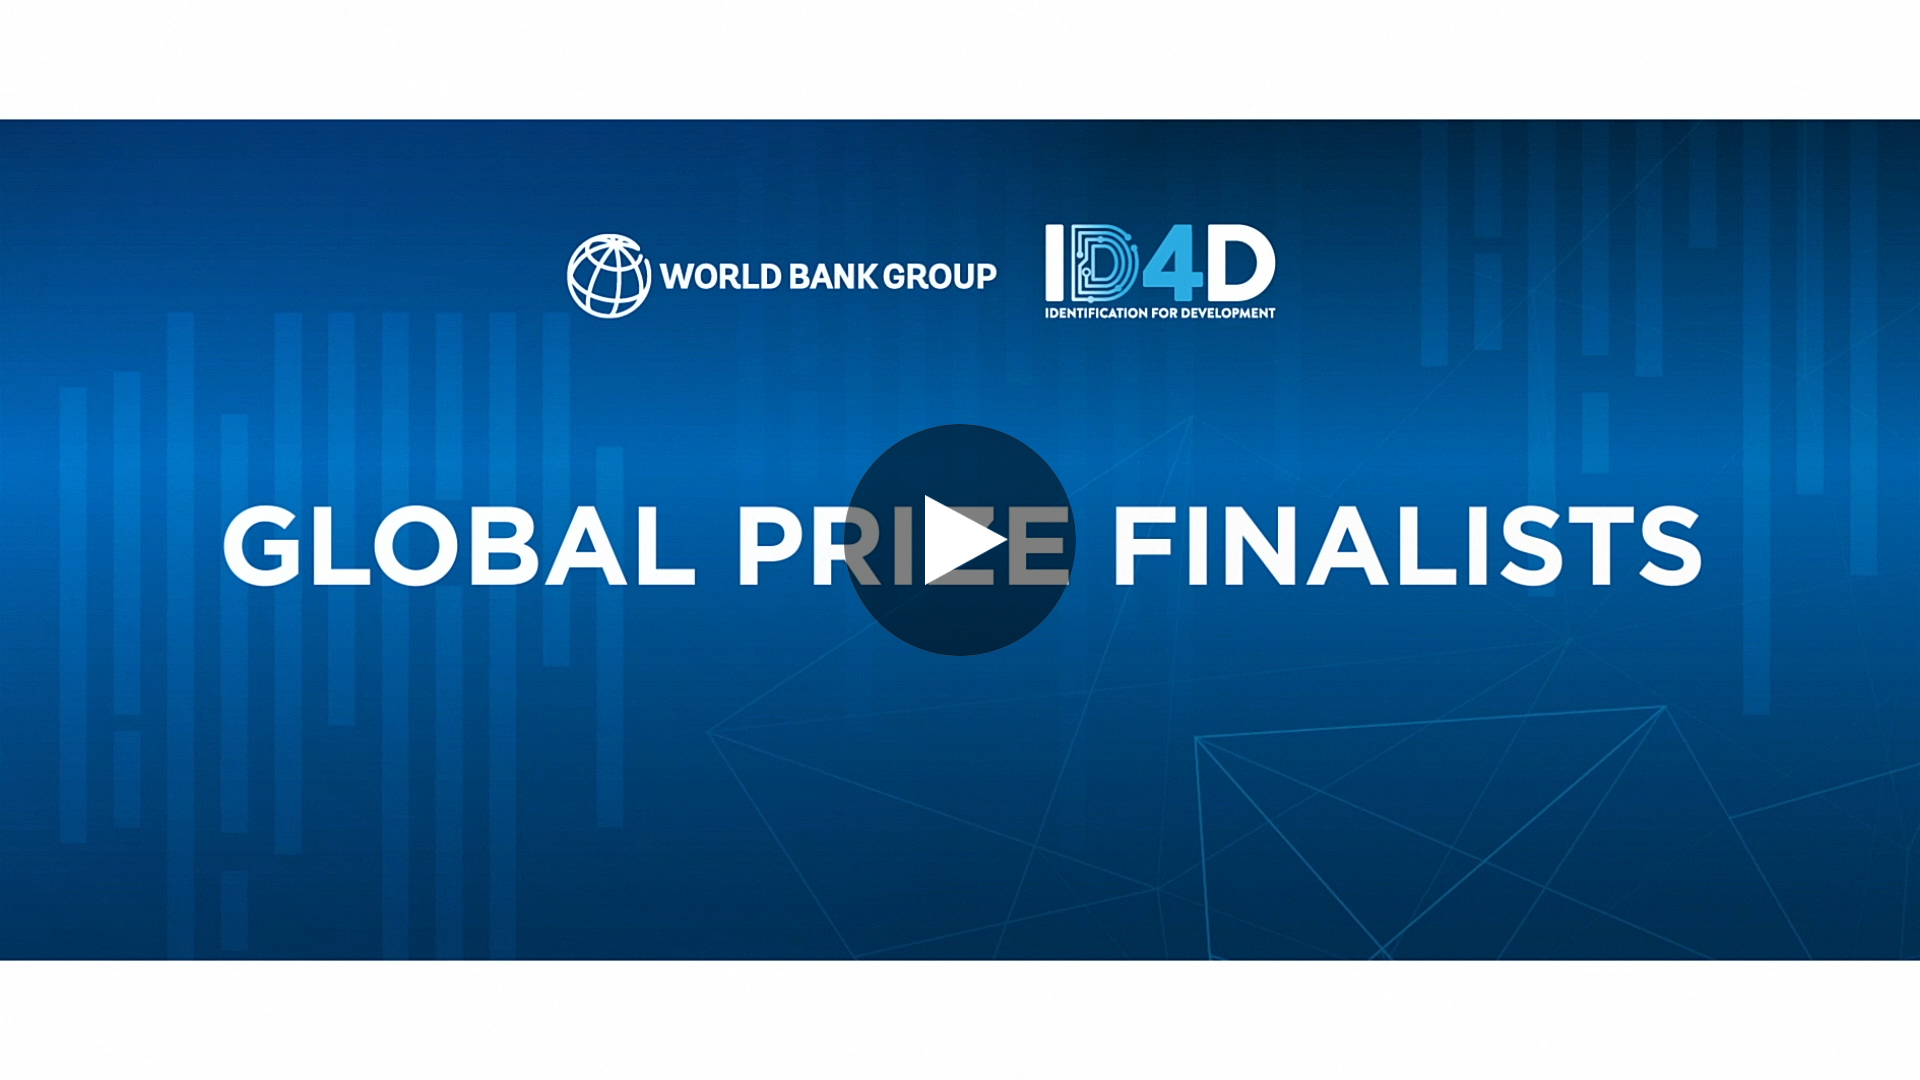 GLOBAL PRIZE FINALISTS